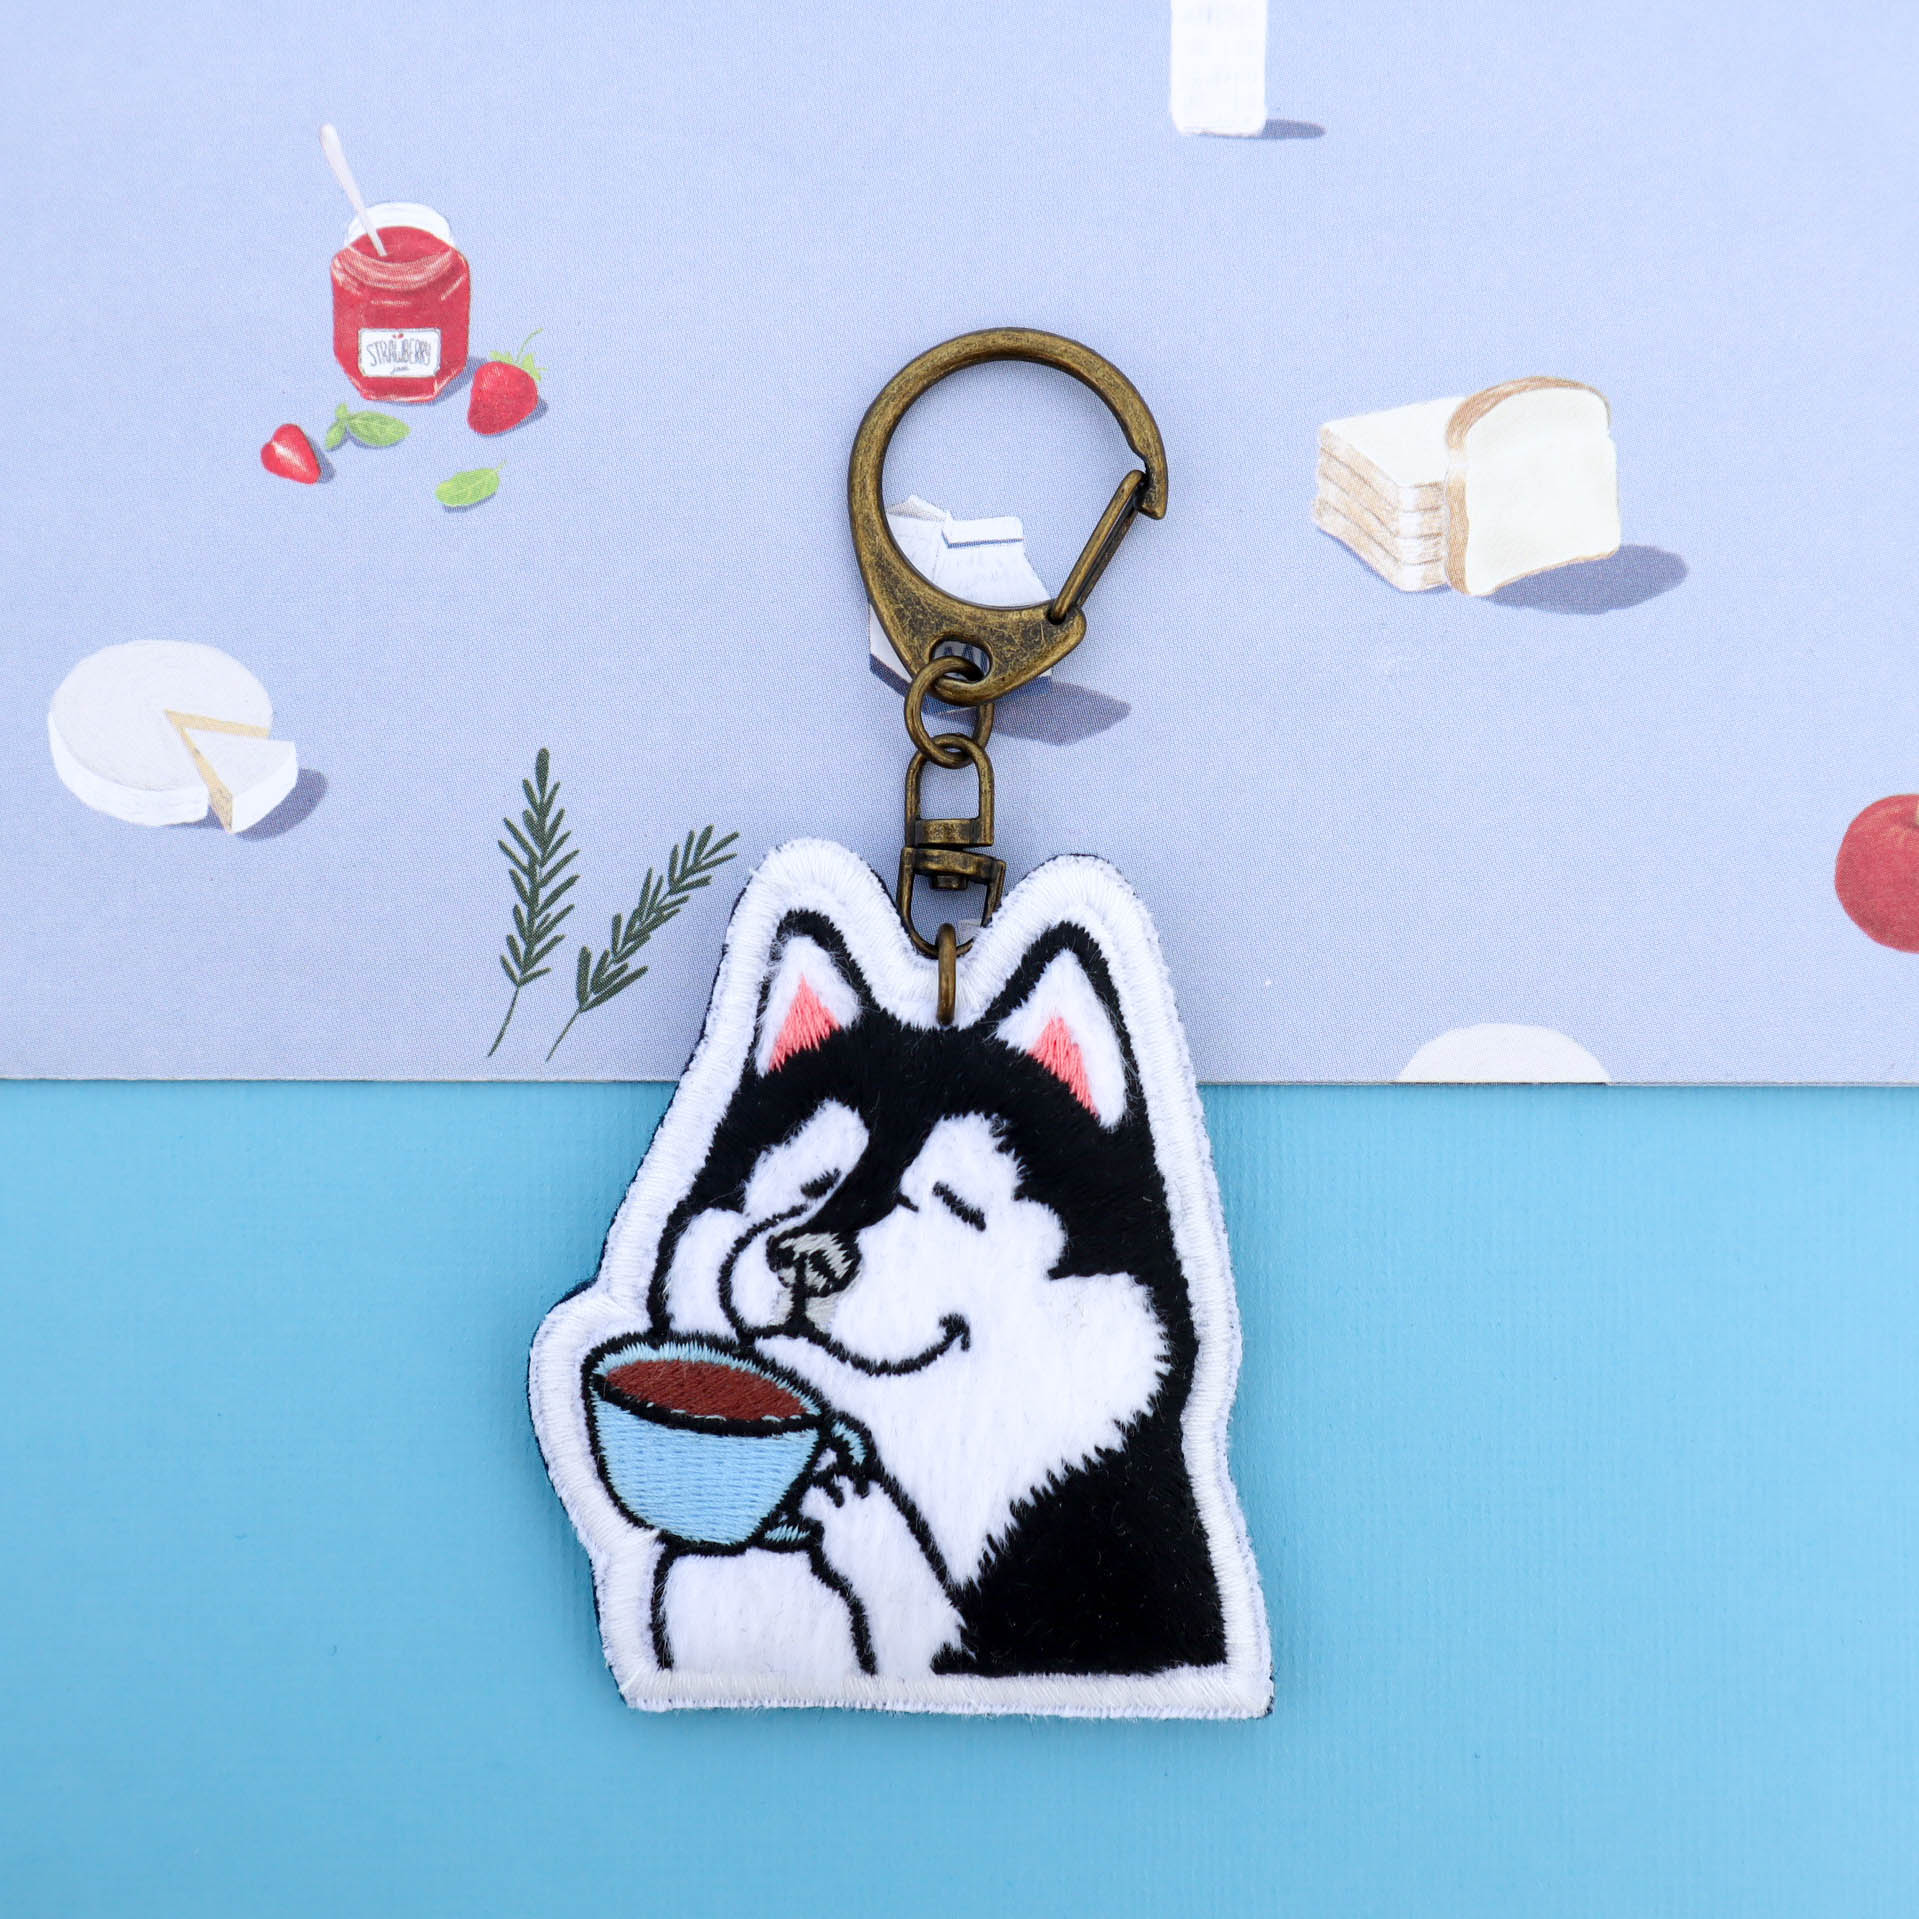 Little OH! 手工飾品 | Featured Collections - 刺繡布品 embroidery keychain